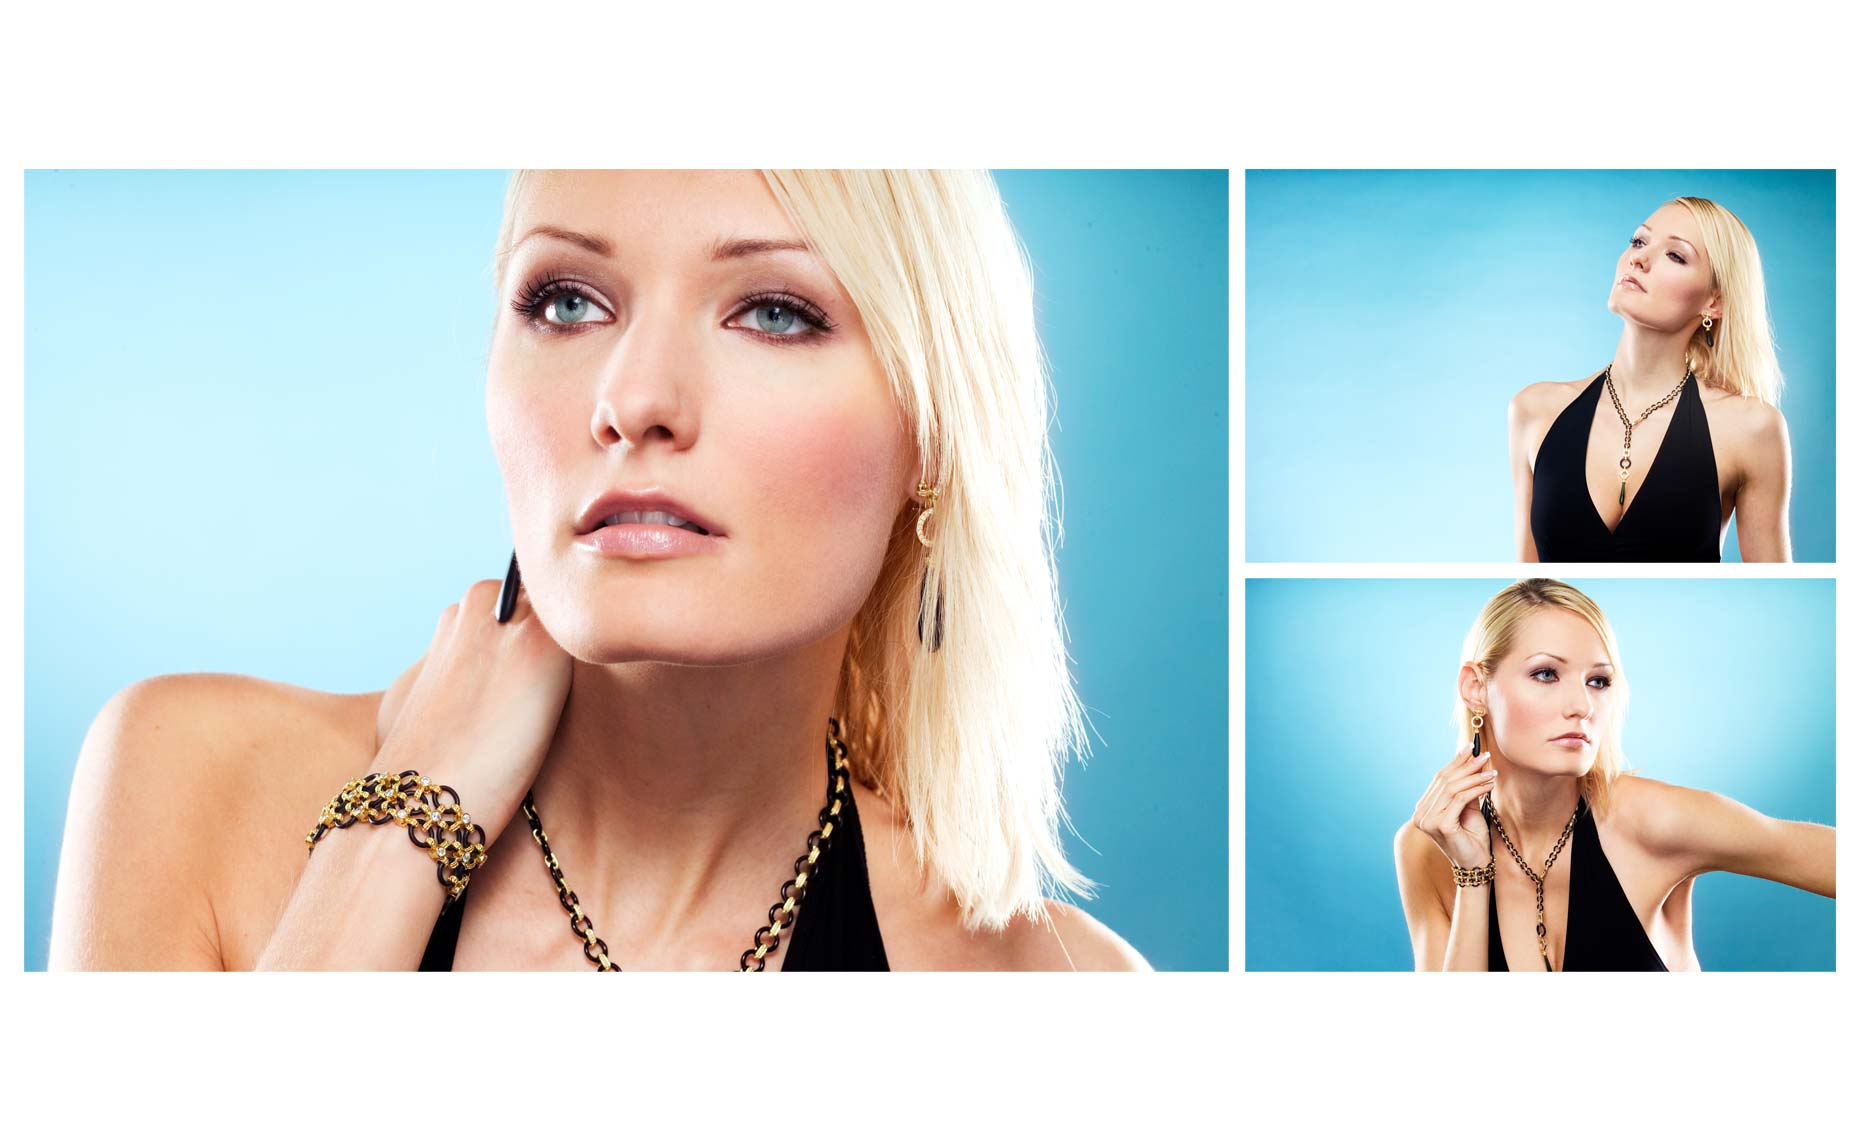 Jewelry shoot with beautiful blonde model